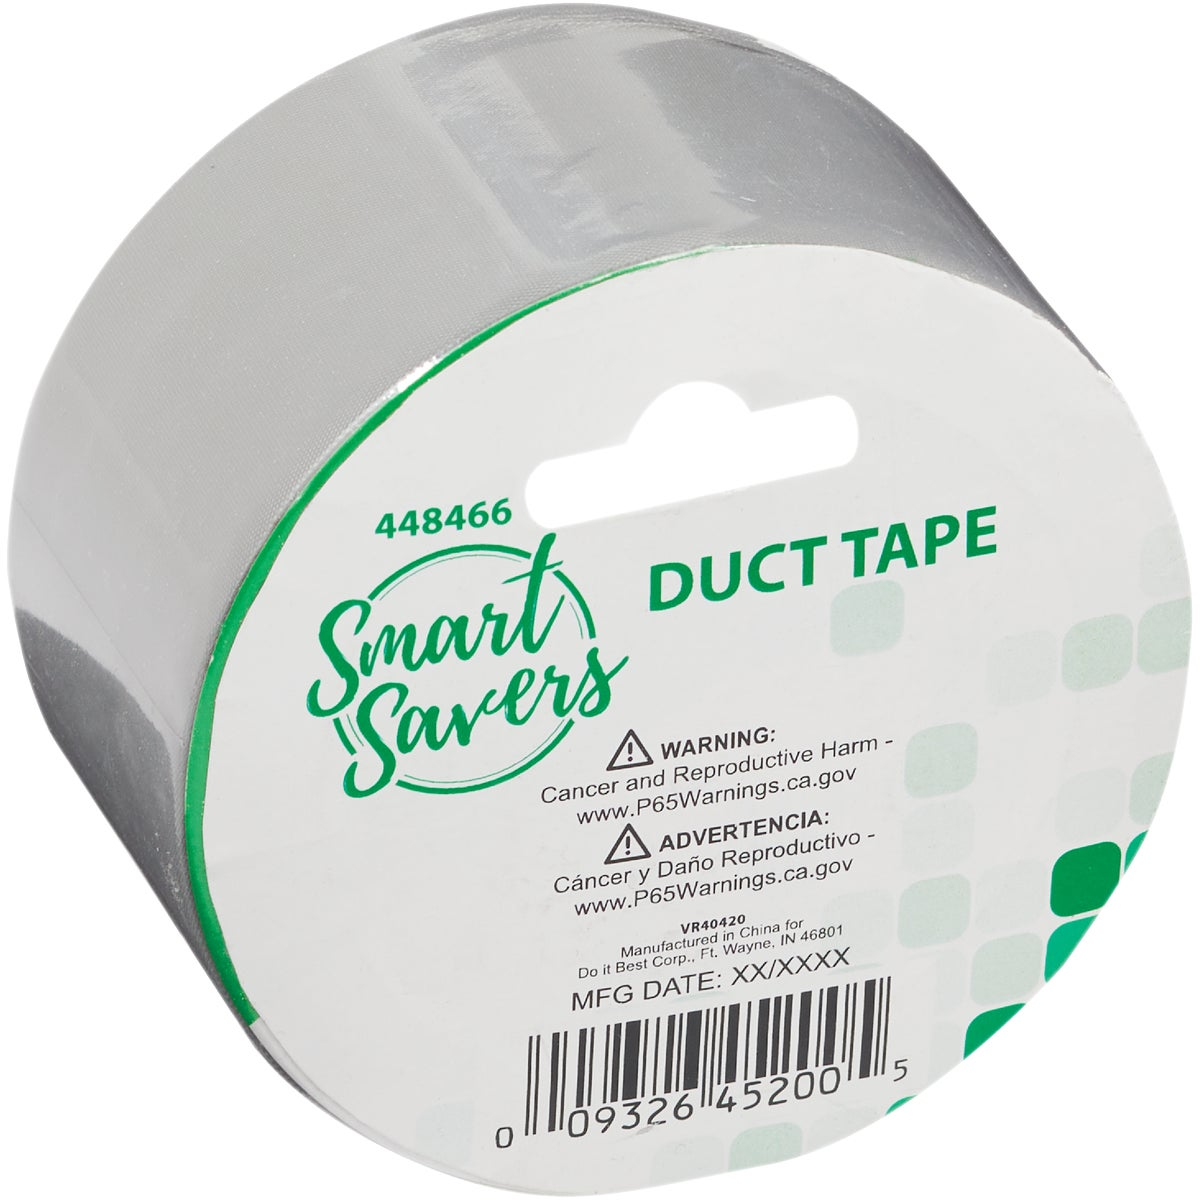 DUCT TAPE - 10099 by Do it Best